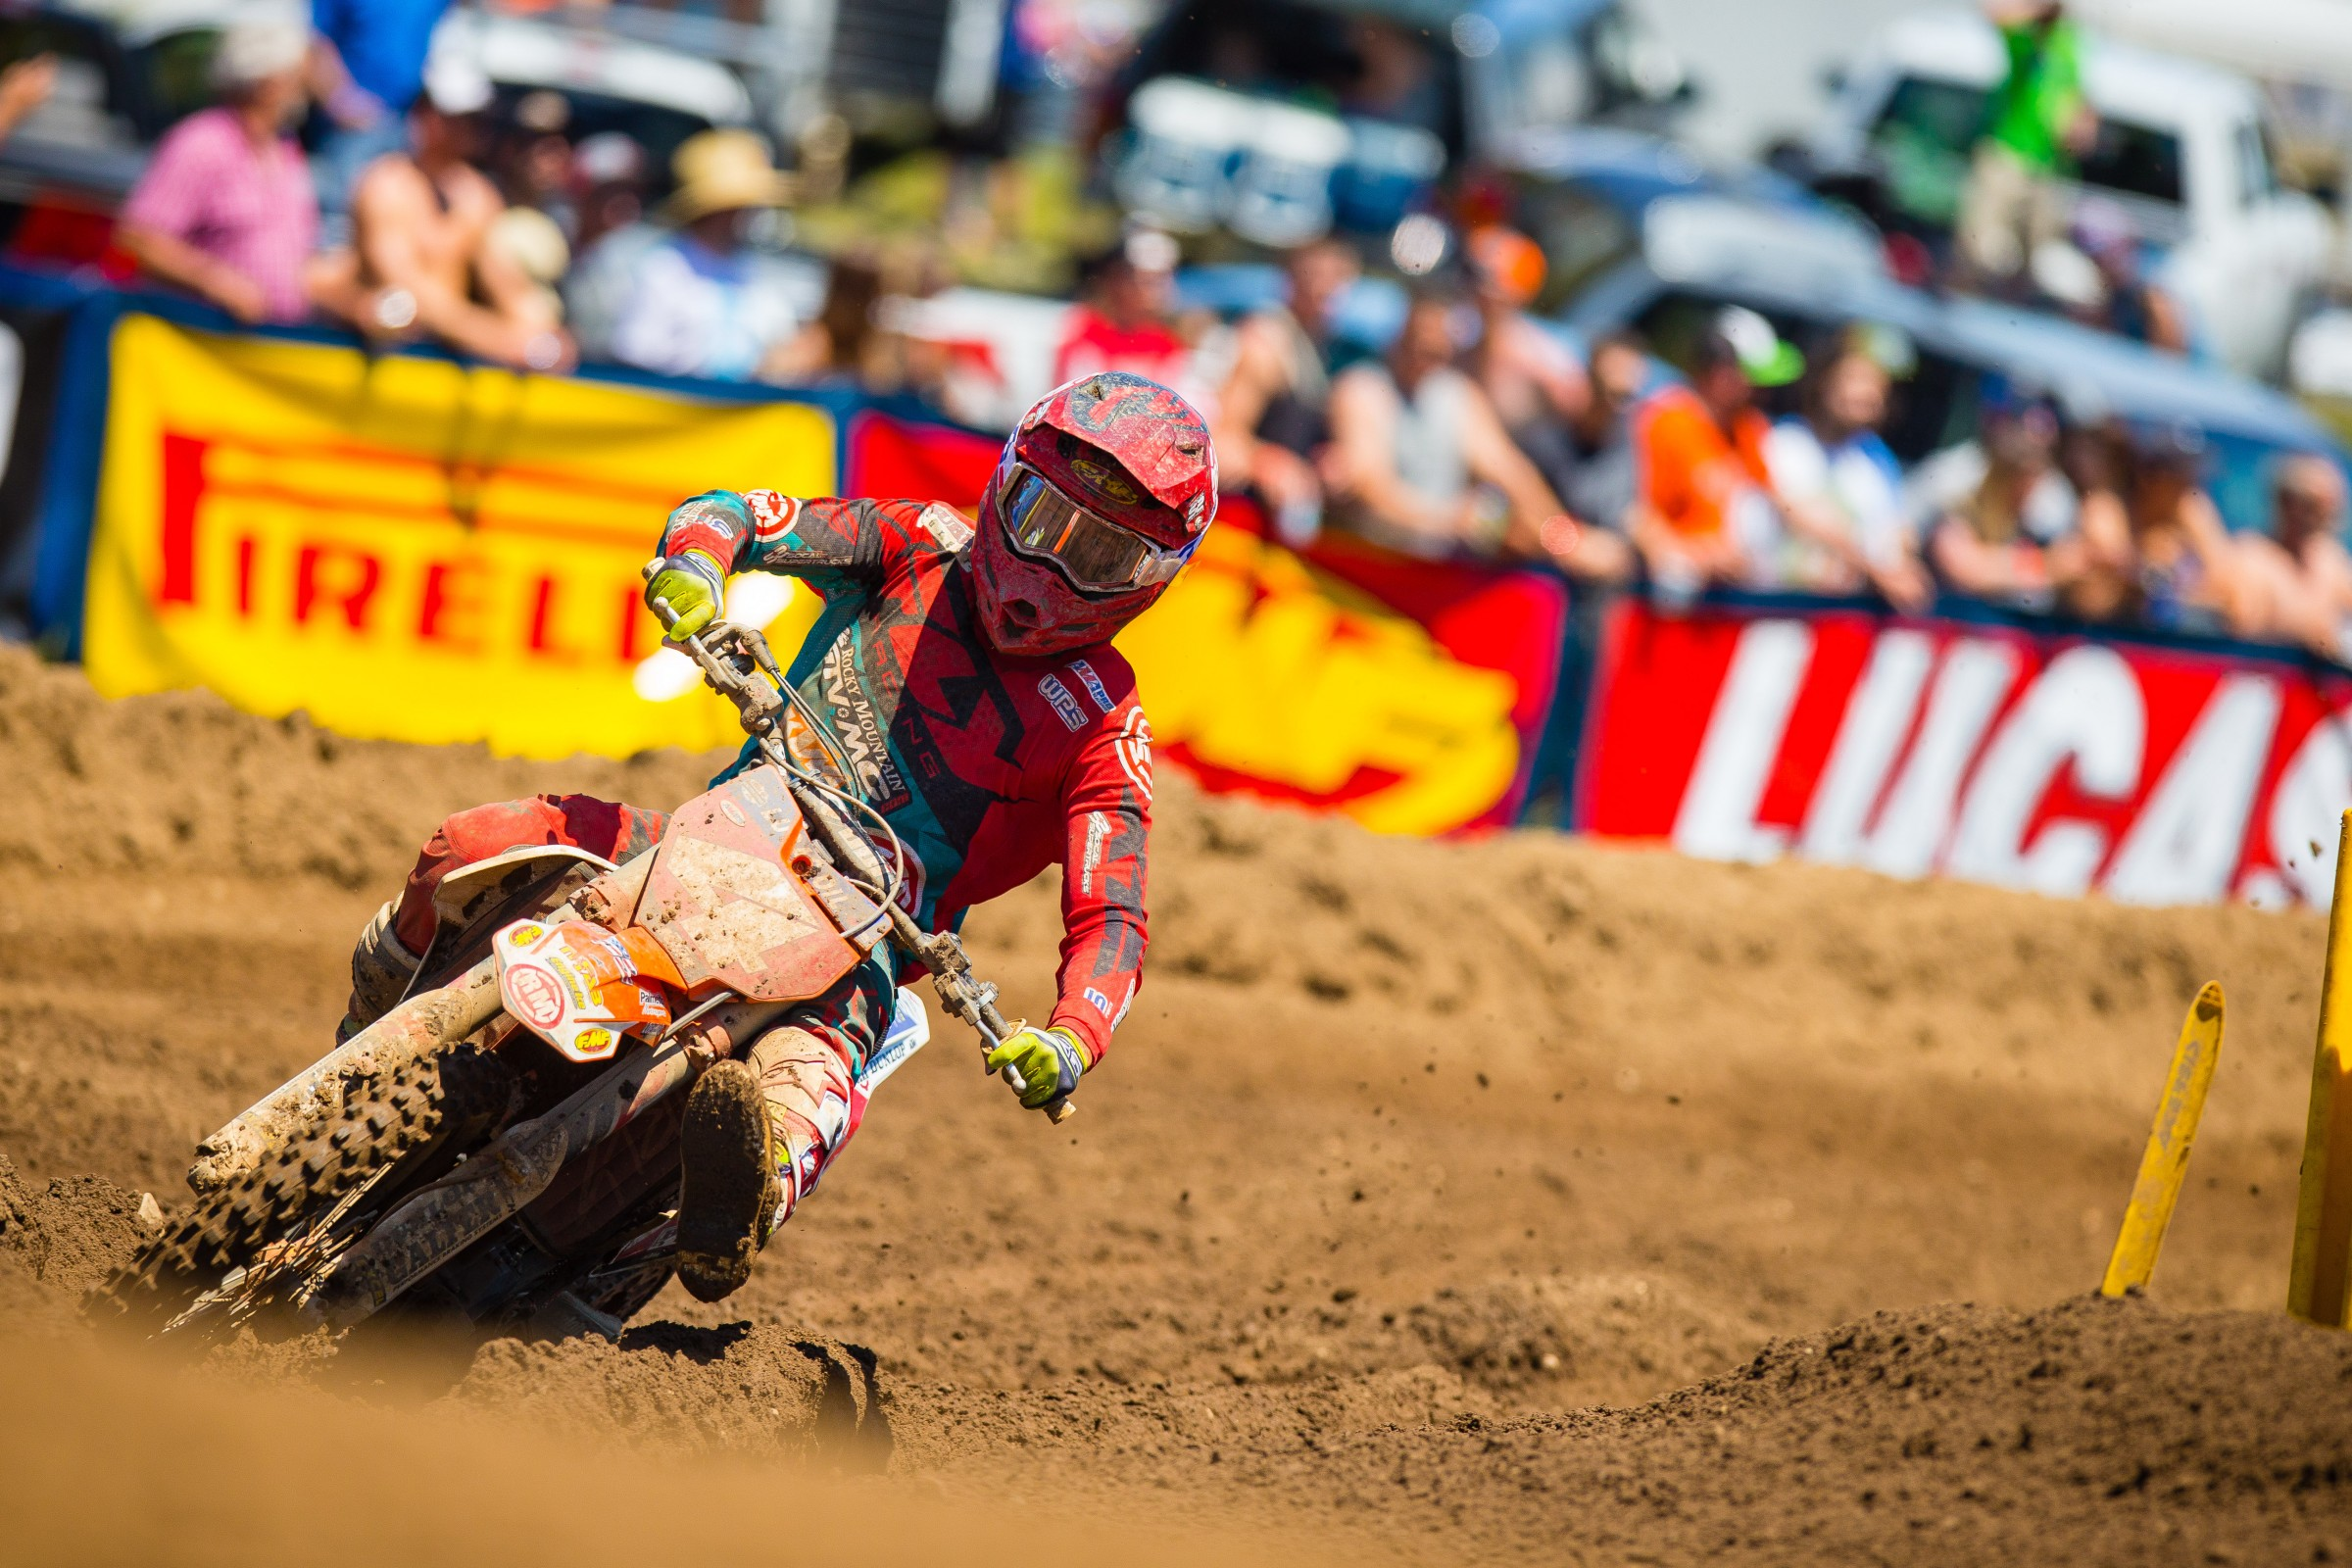 Baggett will need to have a good weekend at Southwick to stop any momentum Tomac might have gained last weekend.